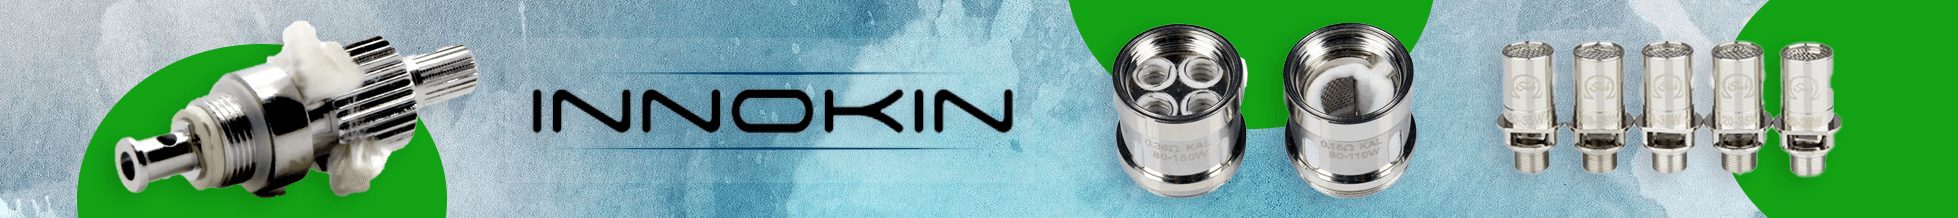 innokin-category-banner.png